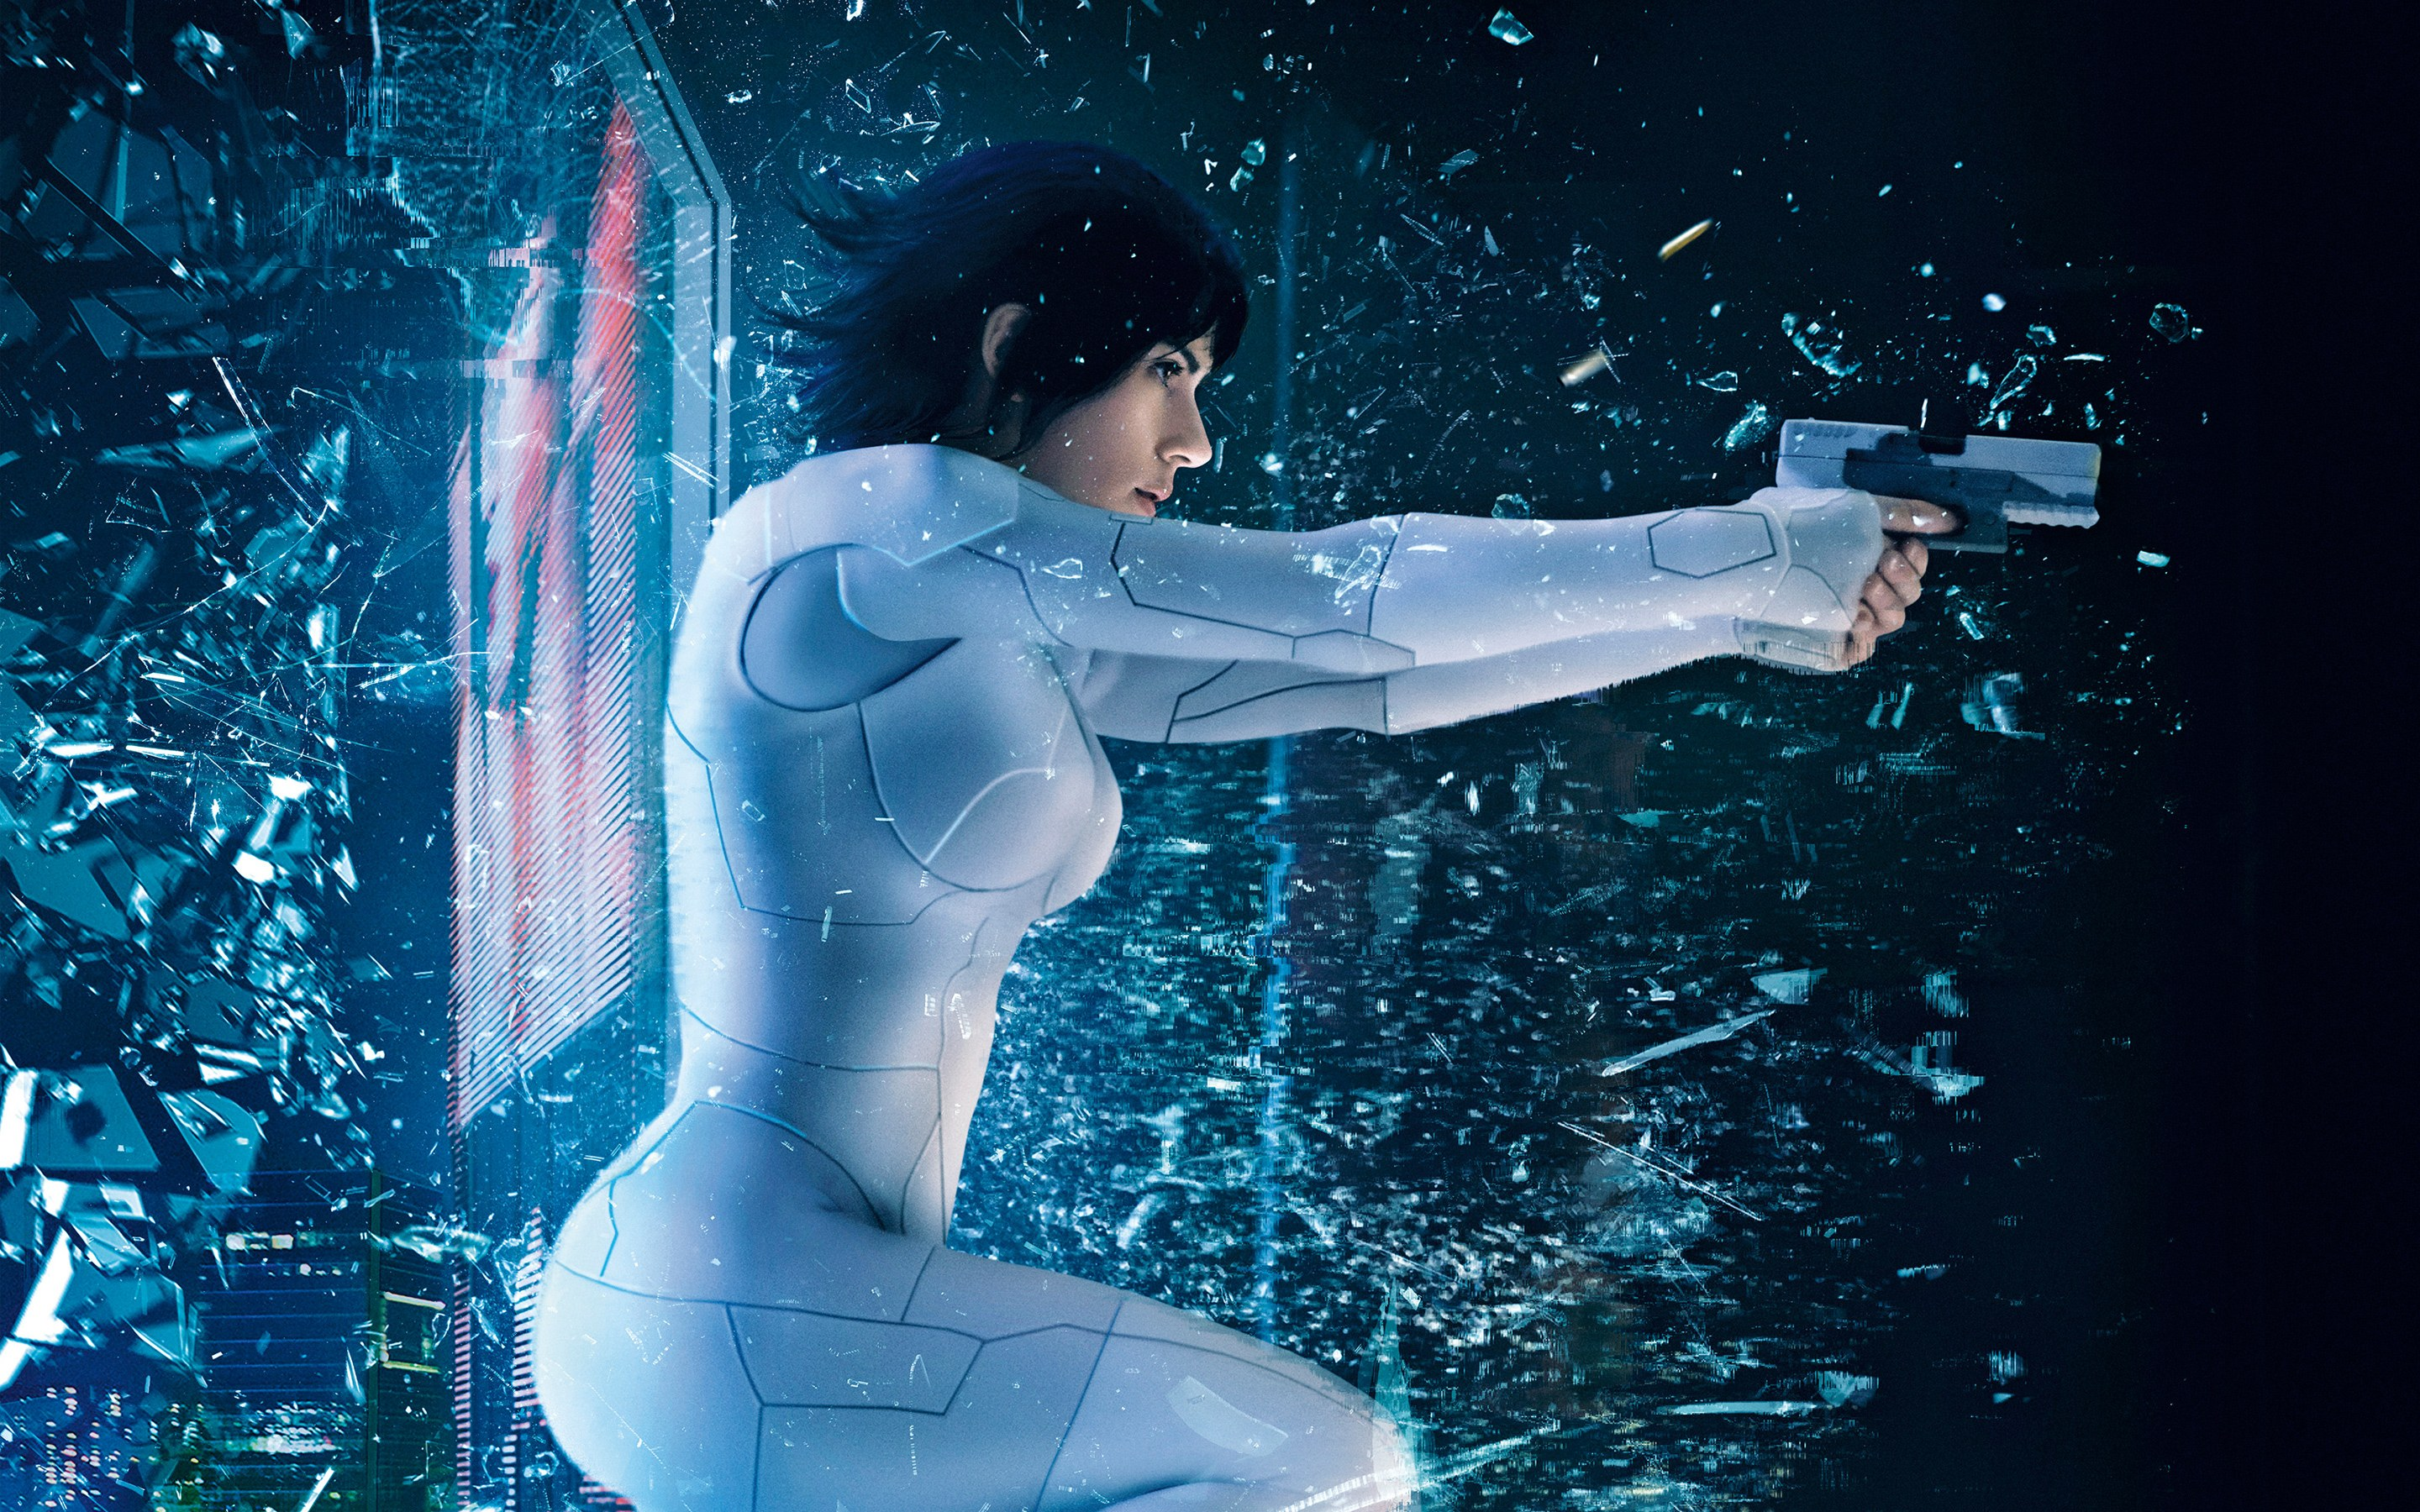 Wallpaper Ghost in the Shell: vigilante del futuro Images